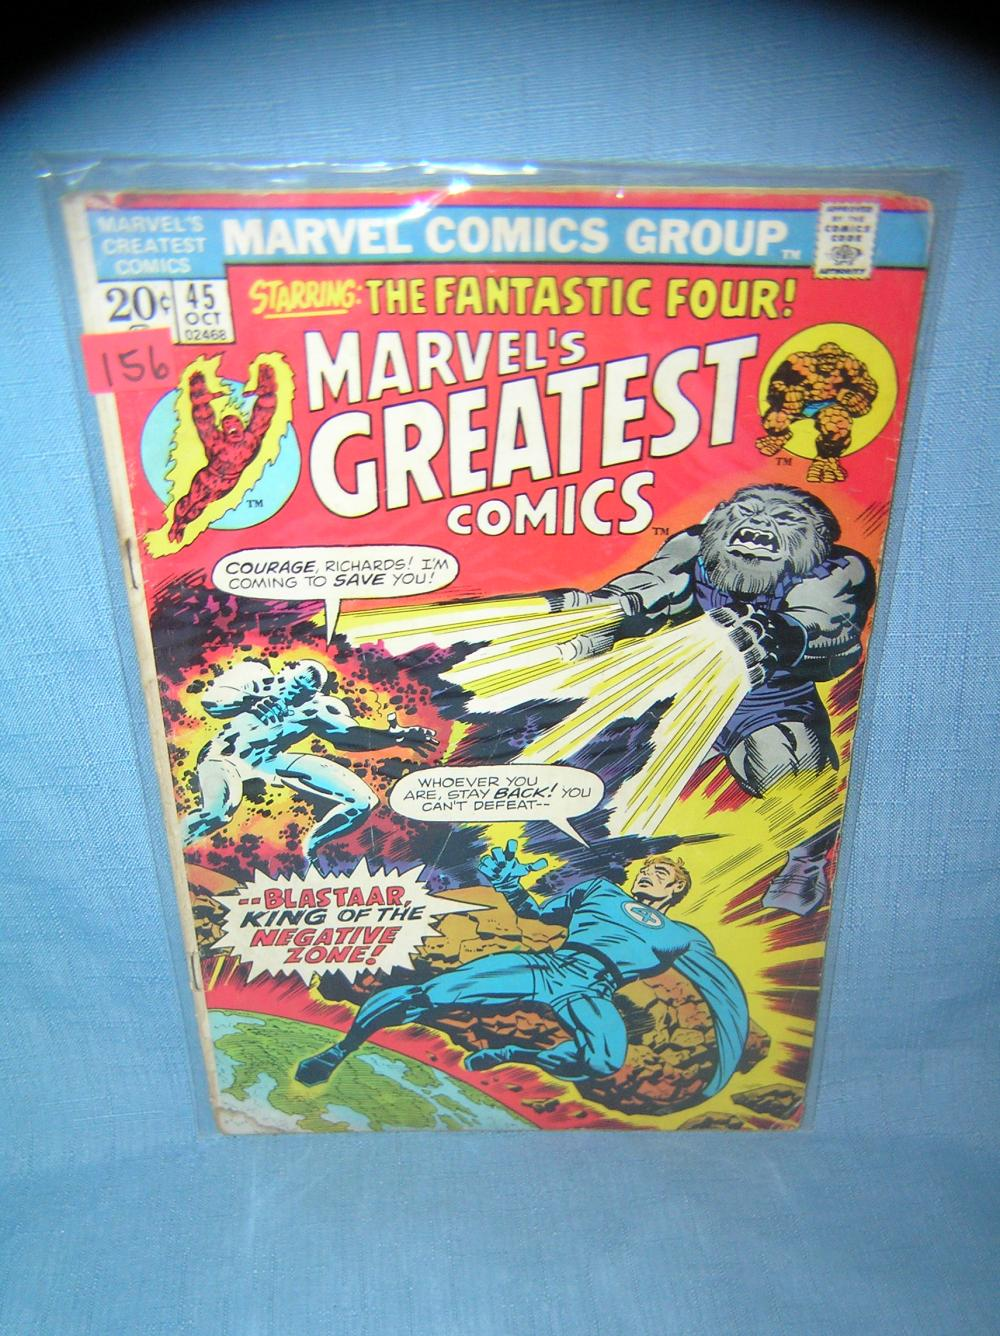 Lot 156: EARLY MARVEL'S GREATEST COMICS COMIC BOOK